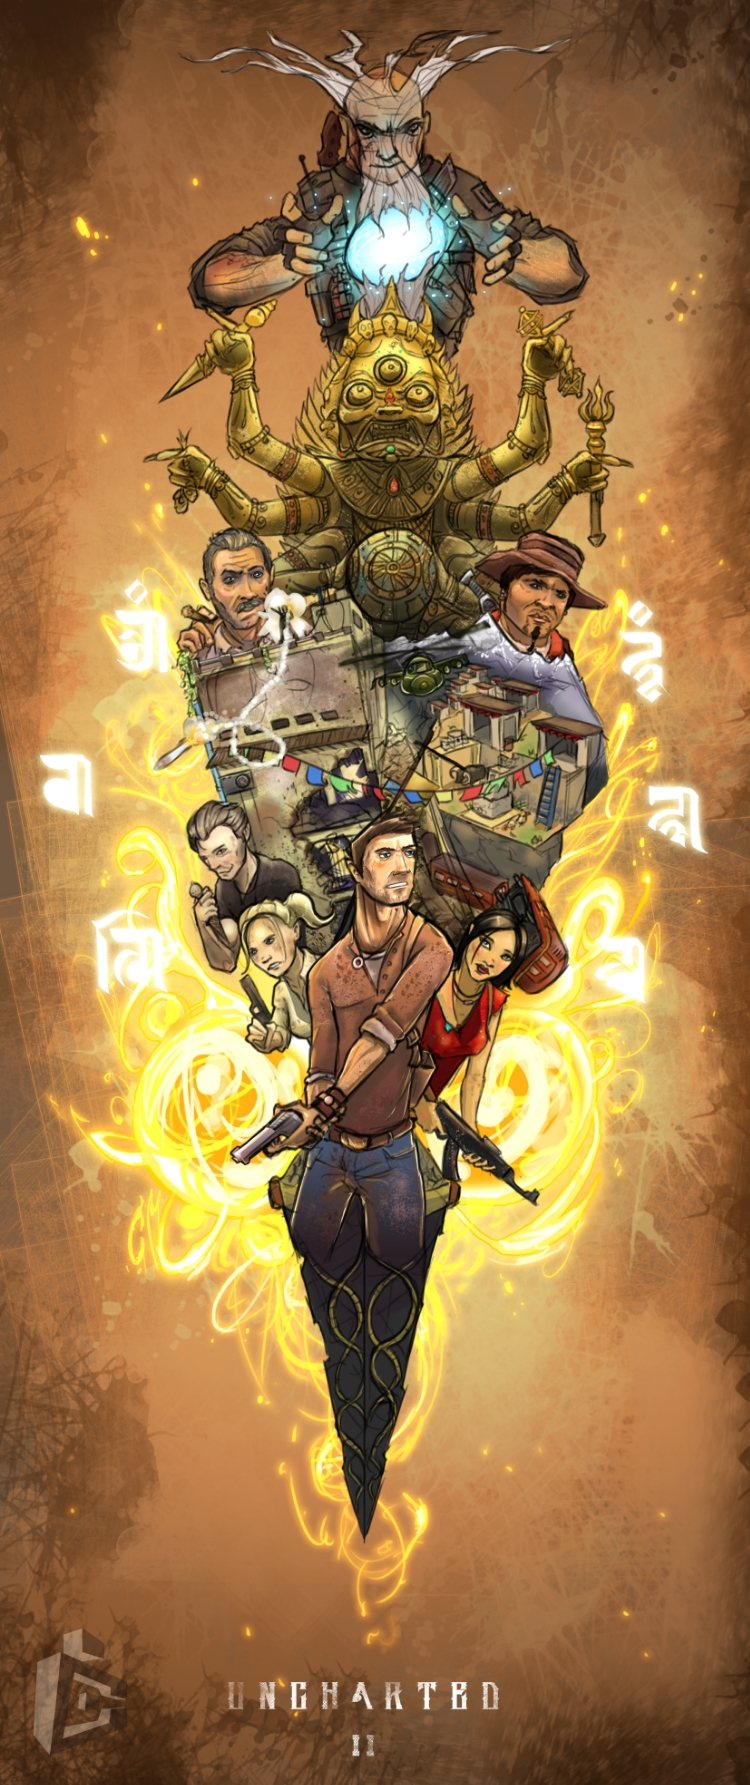 oo_uncharted_ii_oo_by_c_clancy-d3jr2vv.jpg